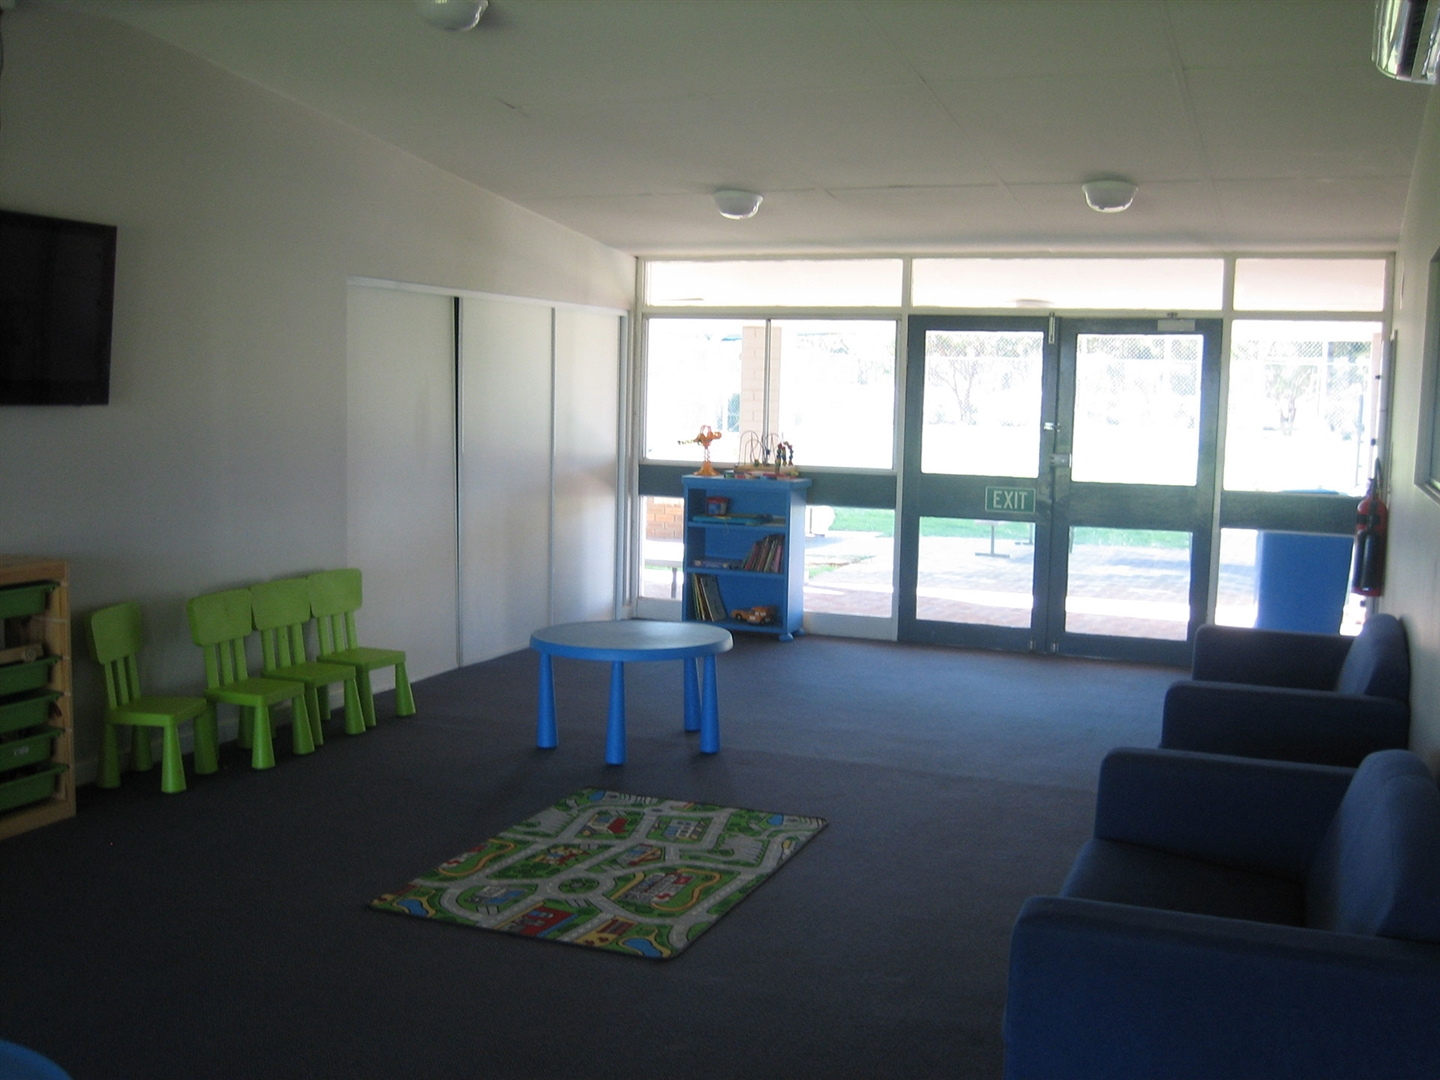 Childrens Creche Room